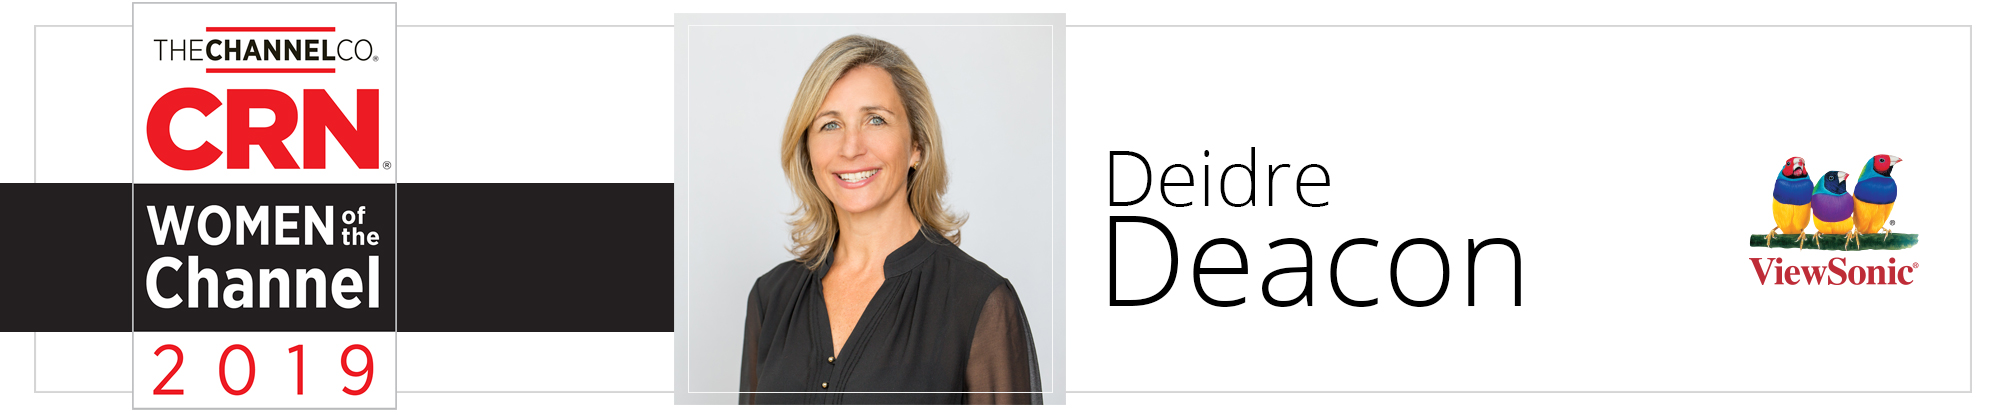 Deidre Deacon, General Manager of ViewSonic Canada, Honored  as One of CRN's 2019 Women of the Channel